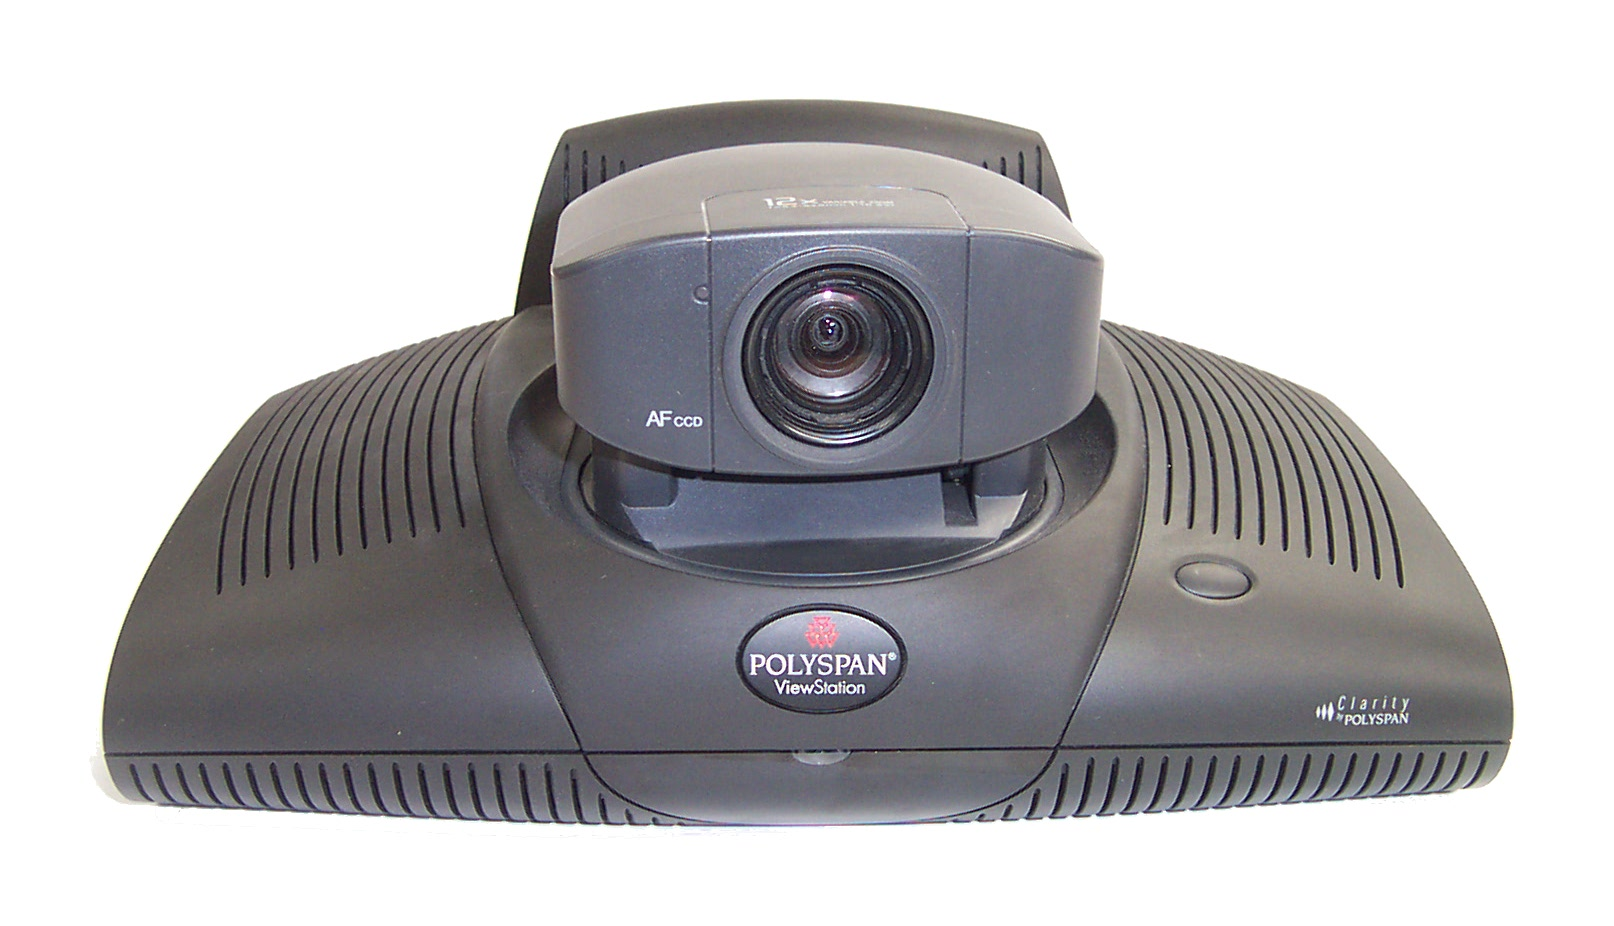 Polyspan 2201-08900-101 Model: PVS-16XX ViewStation- PAL Camera, UISC Interface